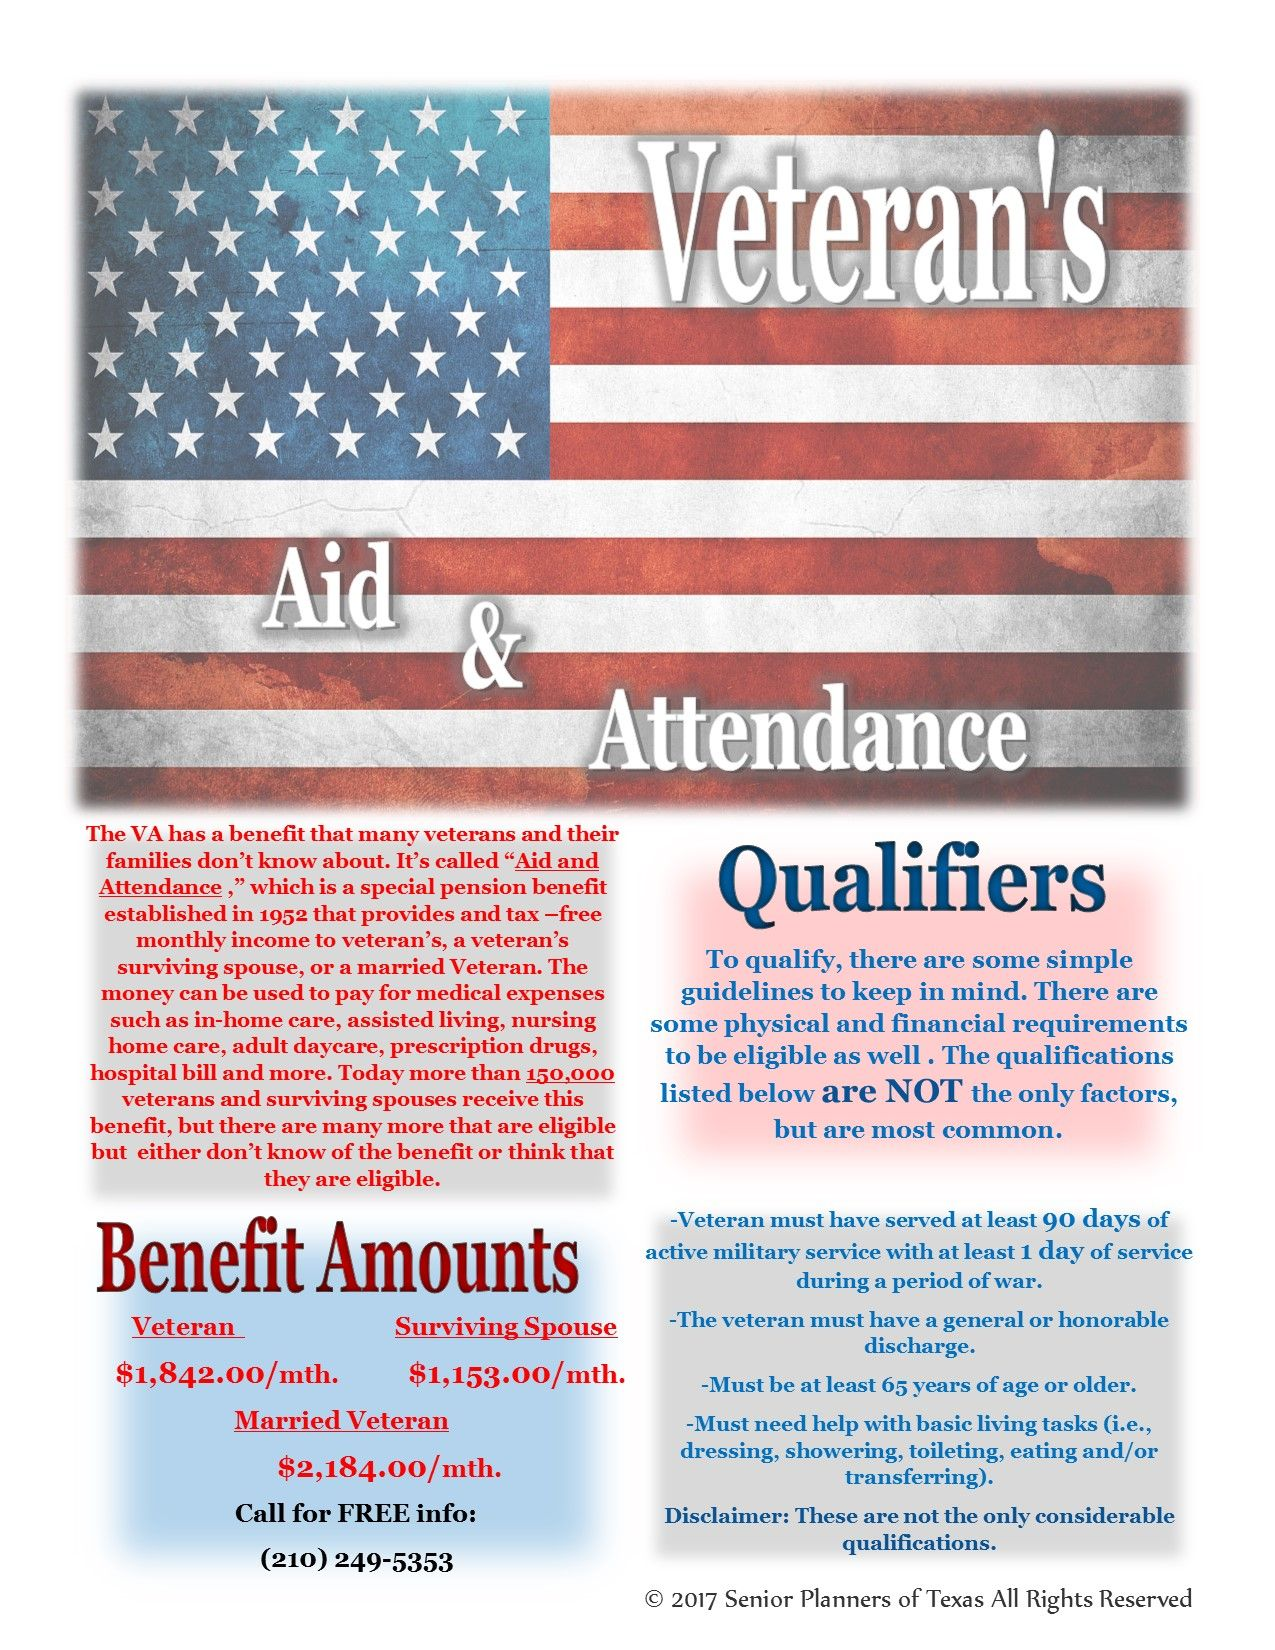 attention veterans! access the benefits you've earned through